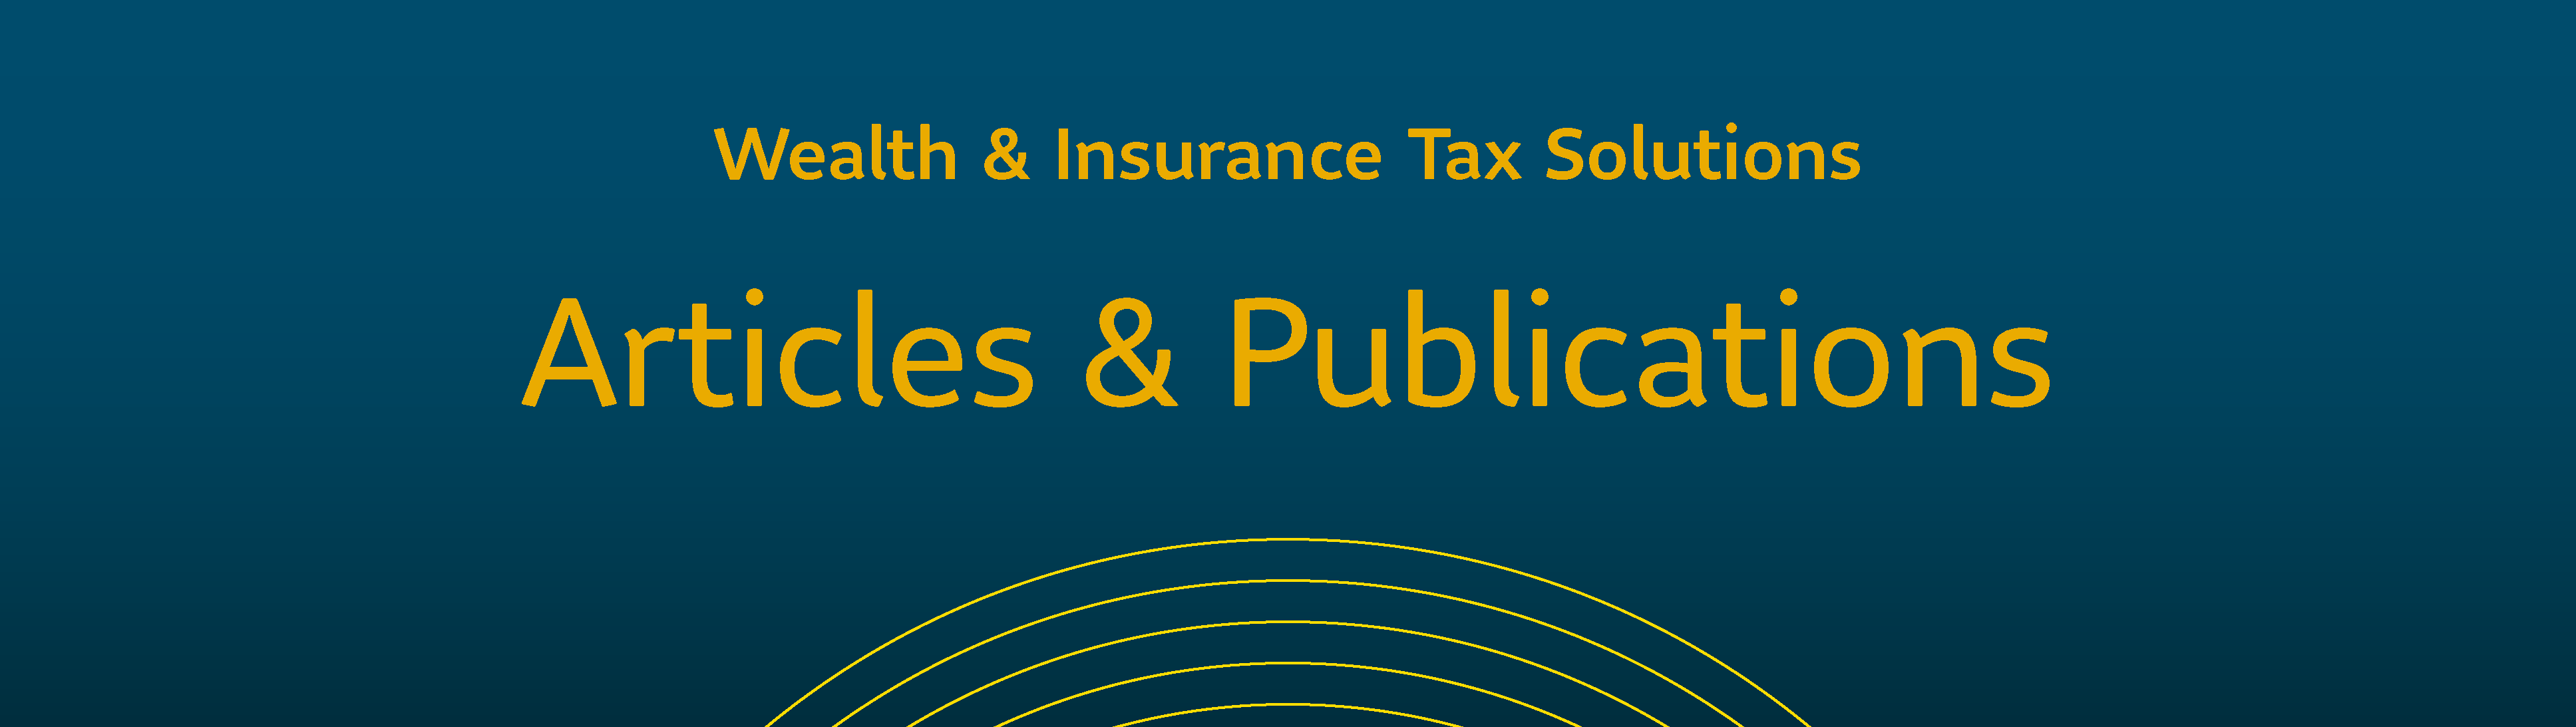 Real solutions for your business from the tax, wealth & insurance planning group at Sun Life Financial - Financial Advisor